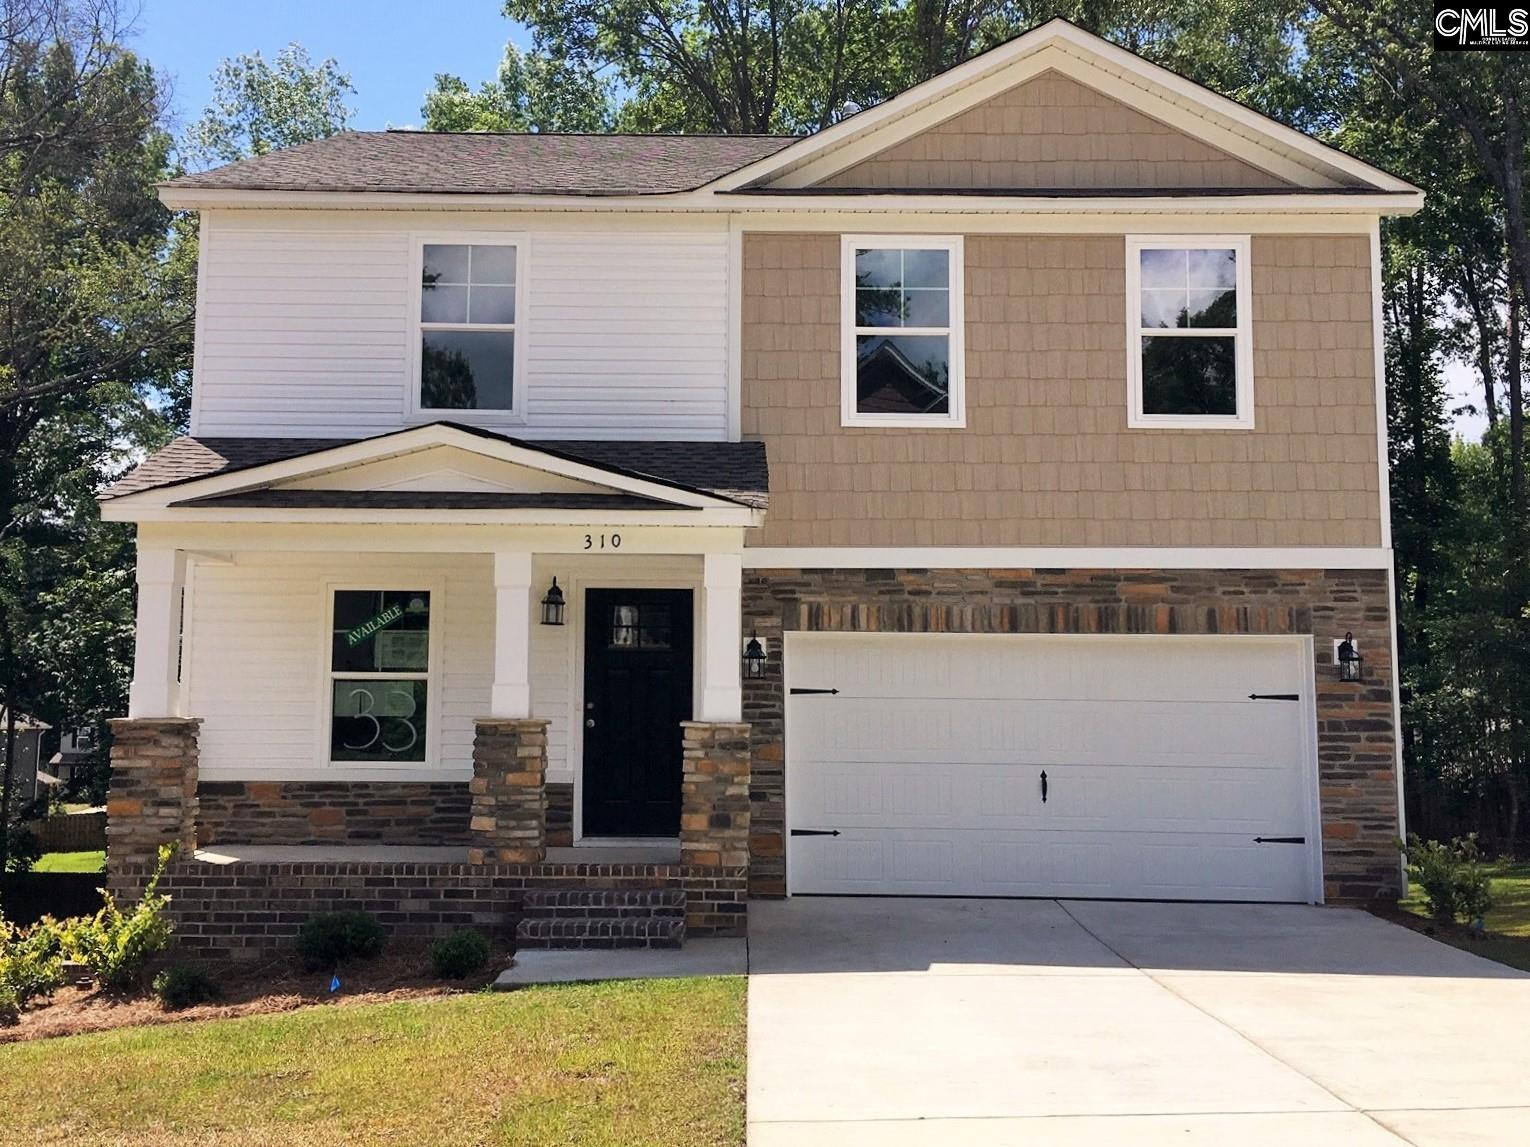 310 Dolly Horn Chapin, SC 29036